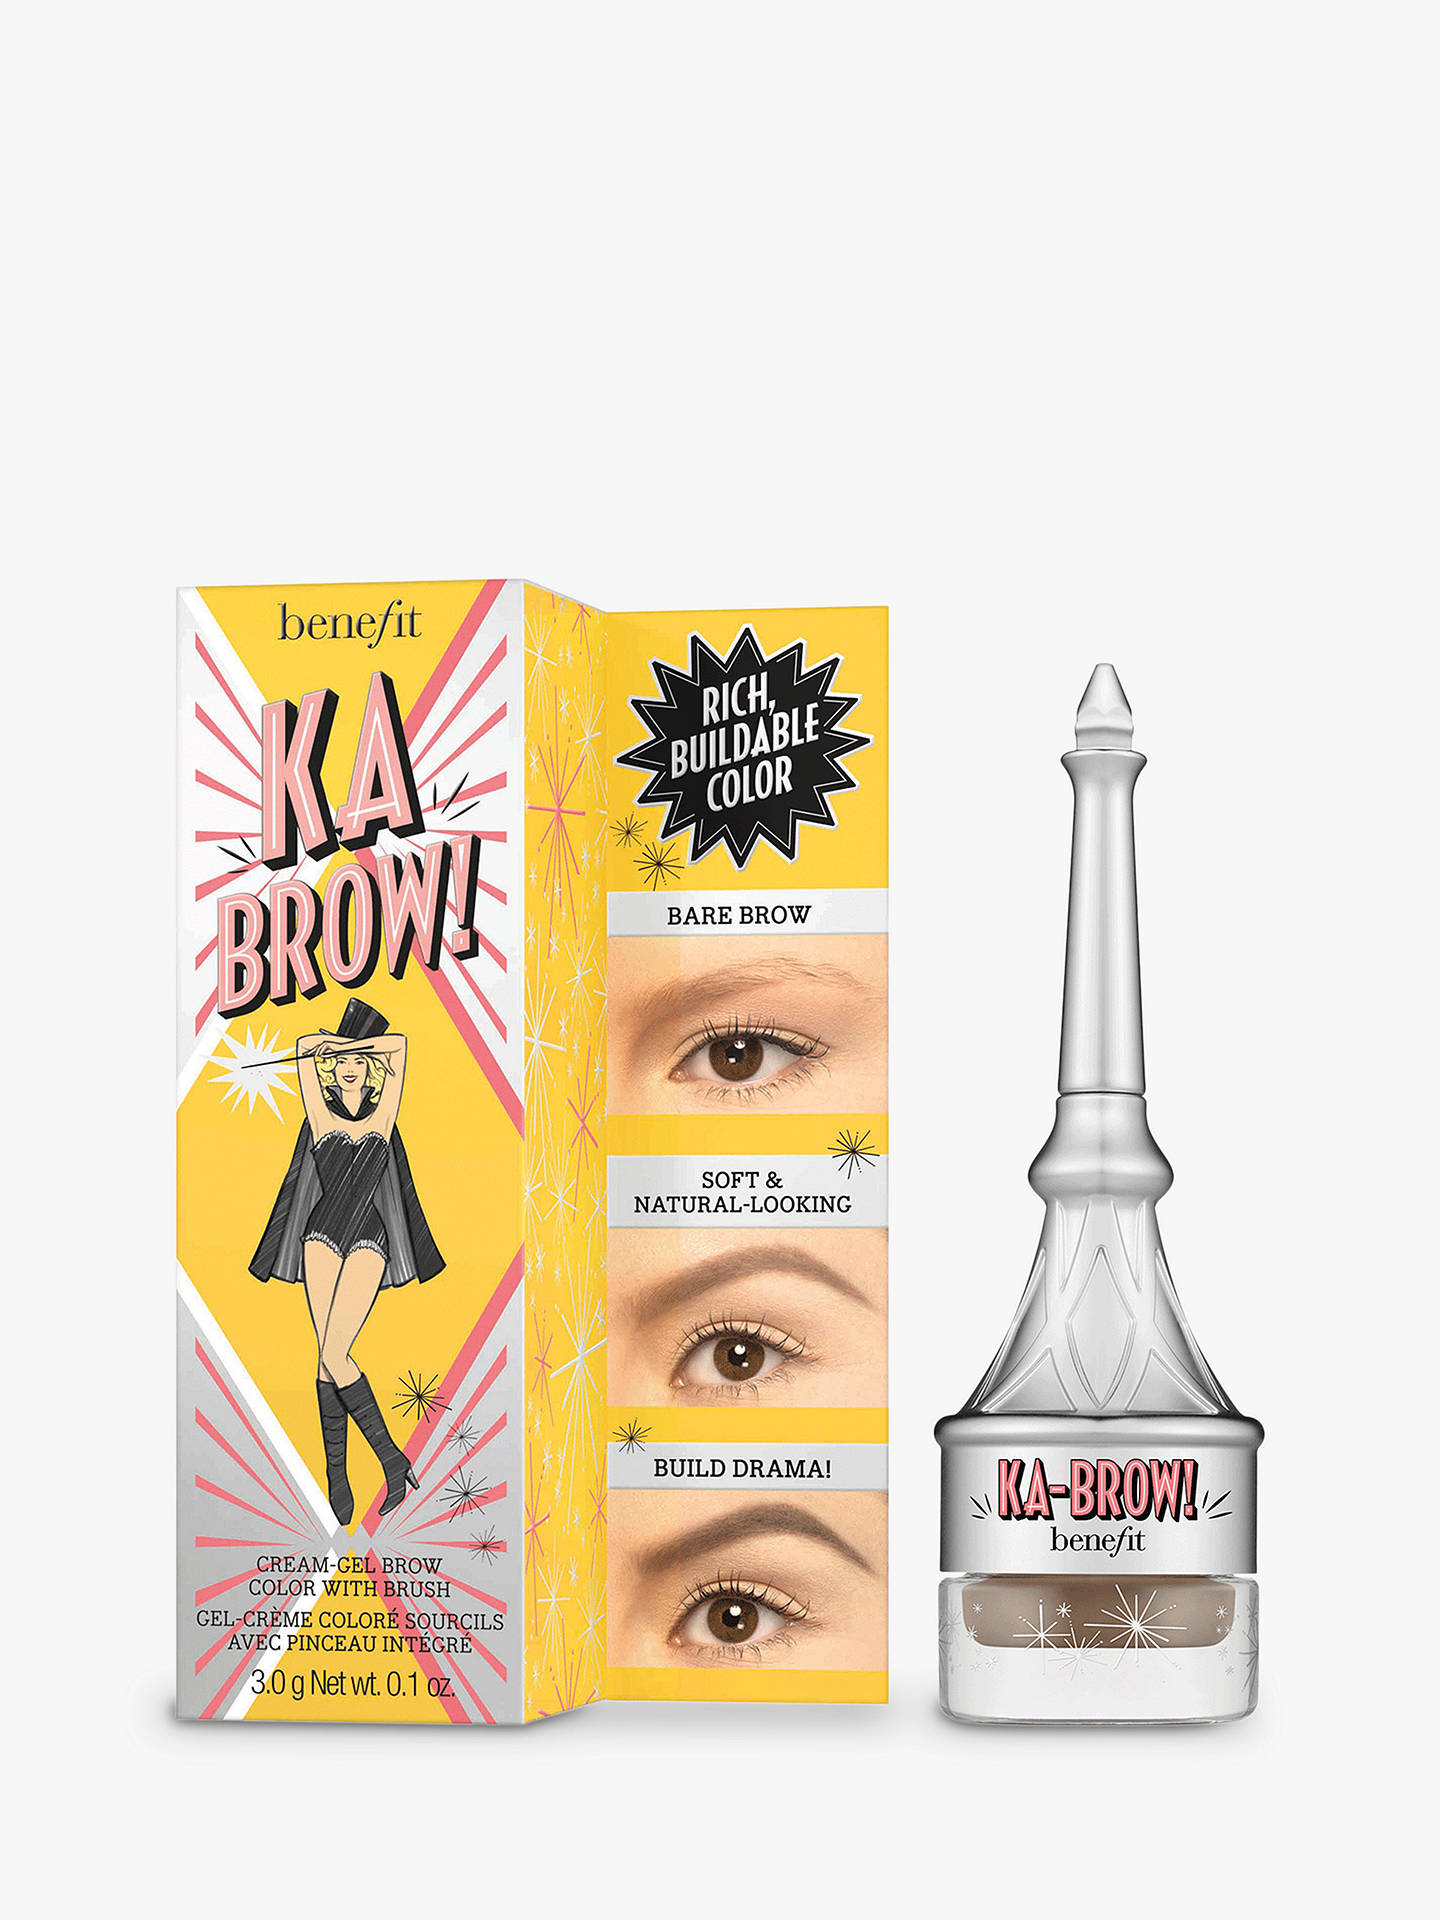 BuyBenefit ka-BROW! Eyebrow Cream-Gel Colour, 01 Light Online at johnlewis.com